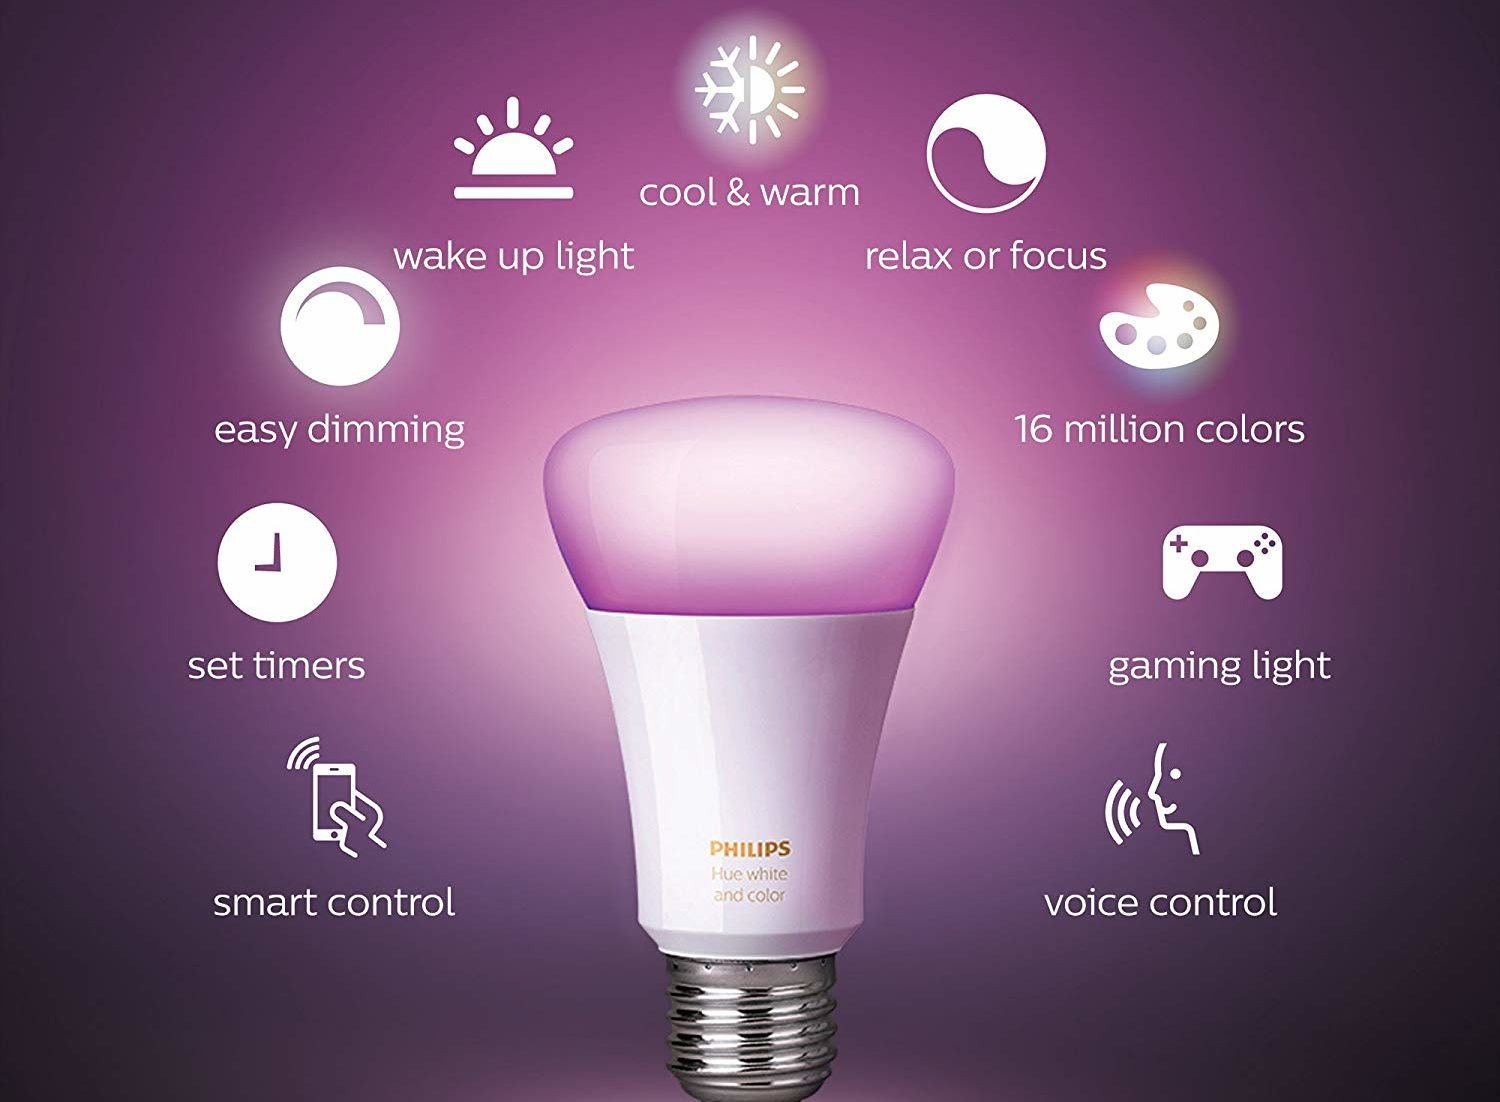 Pick Up A Philips Hue Color Capable Smart Bulb For 36